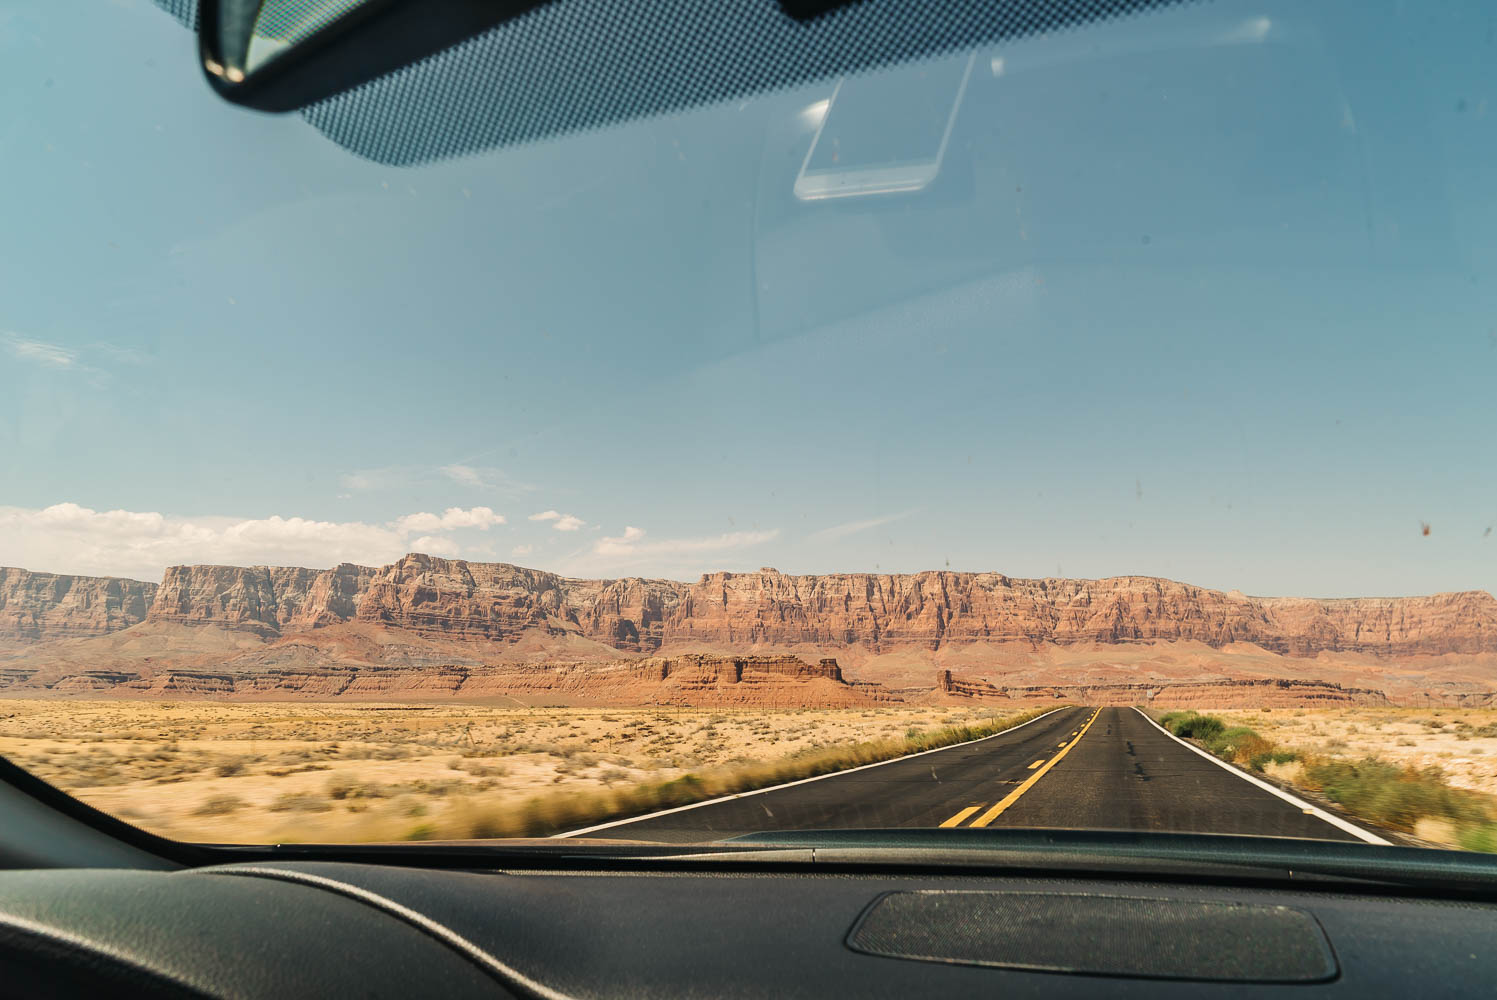 THE SCENIC ROUTE WAS SUCH A BREATHTAKING VIEW FOR MILES AND MILES